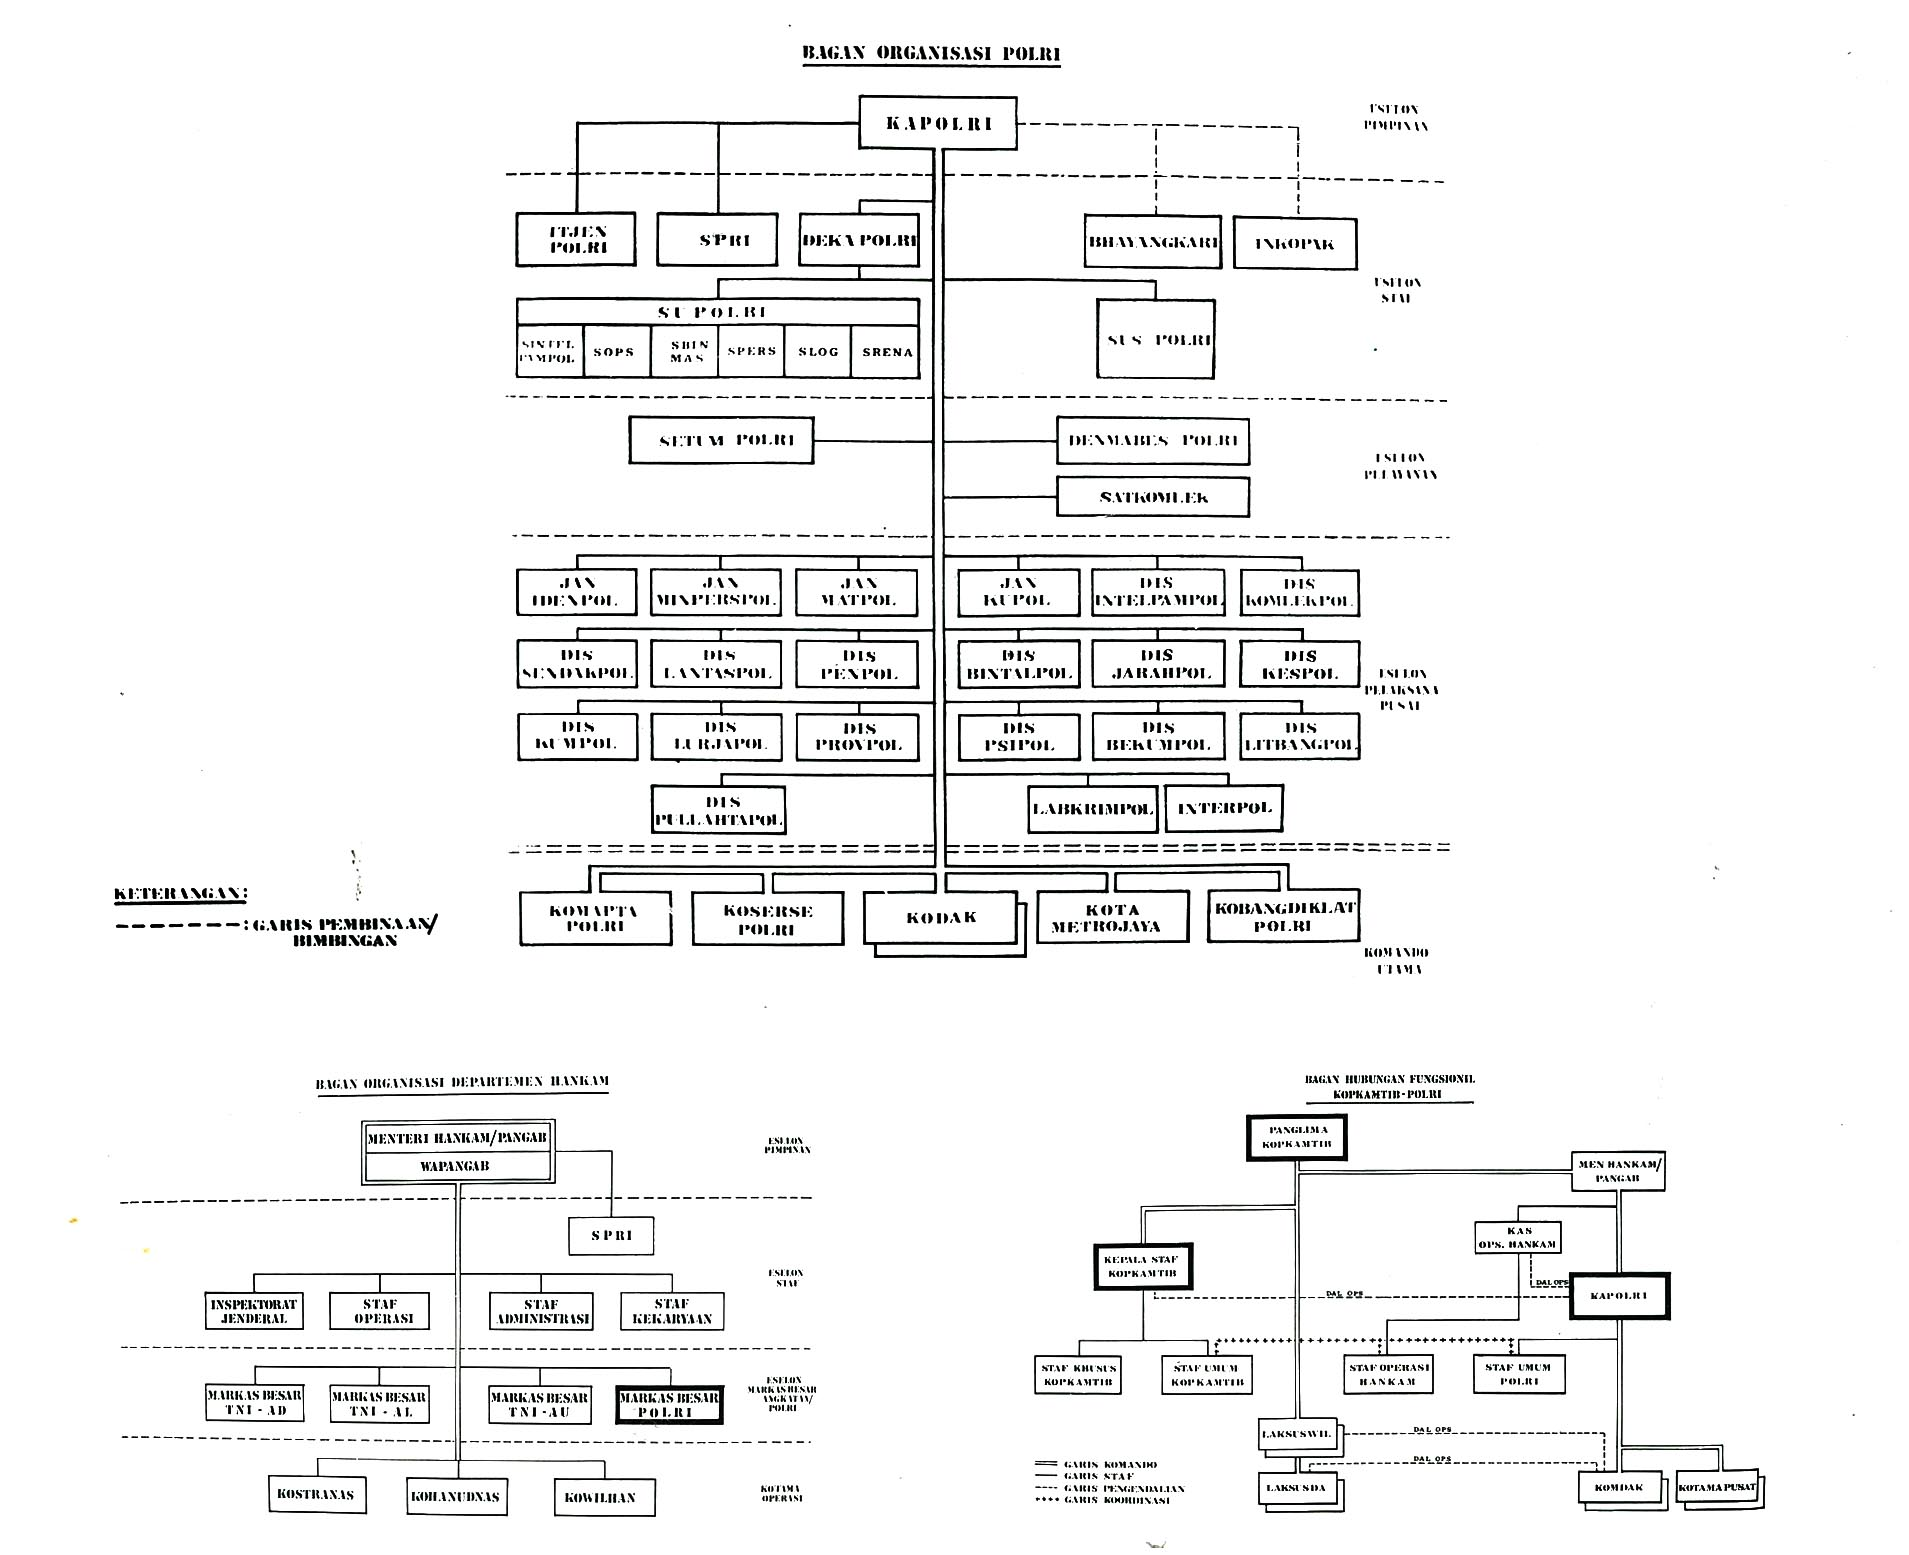 Distribution Center Organizational Chart: Structure of Indonesian police Sekilas Lintas Kepolisian ,Chart